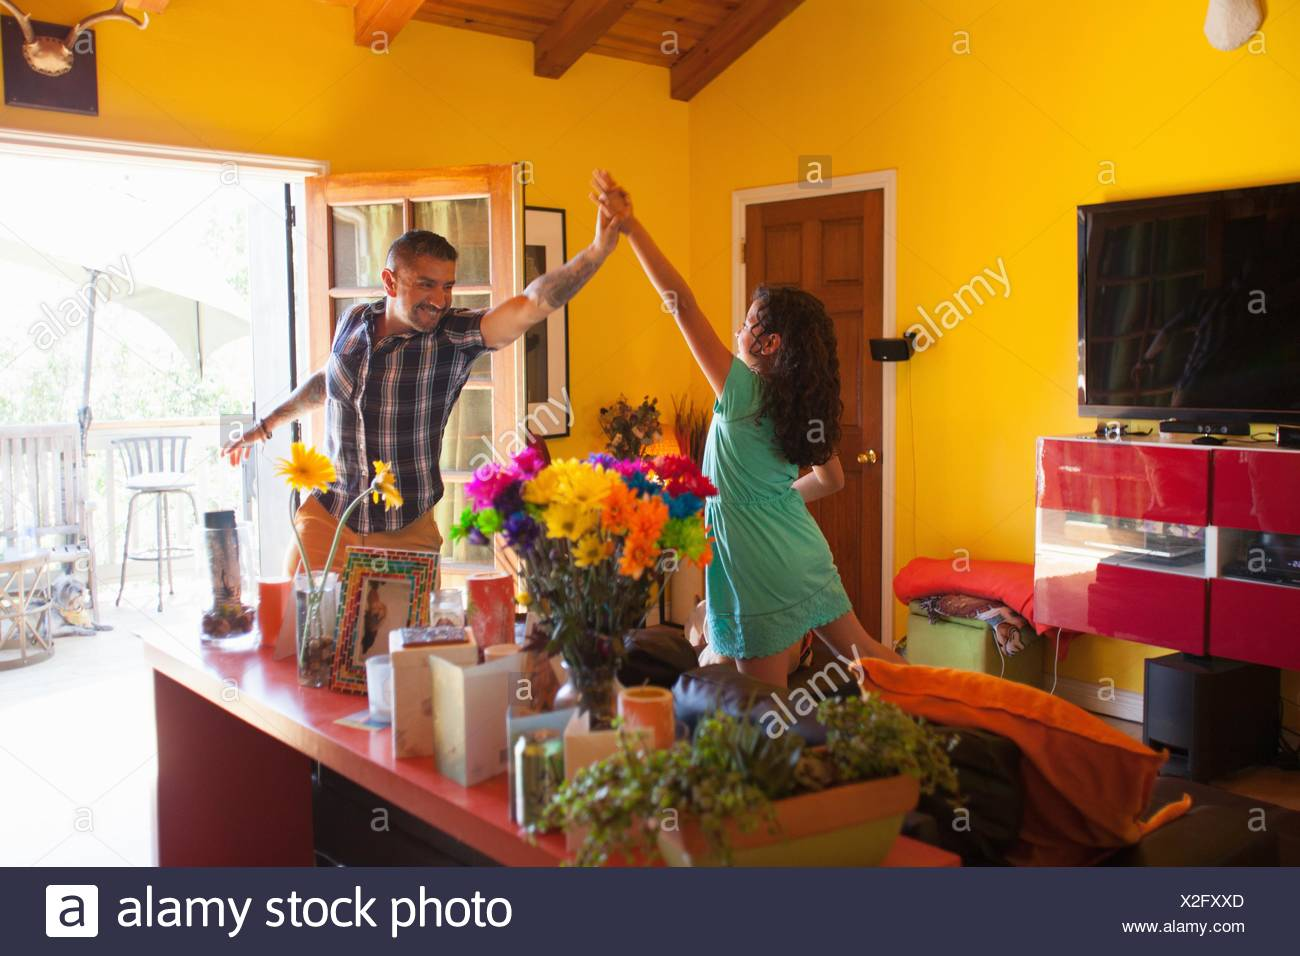 Girl giving father high five in living room - Stock Image